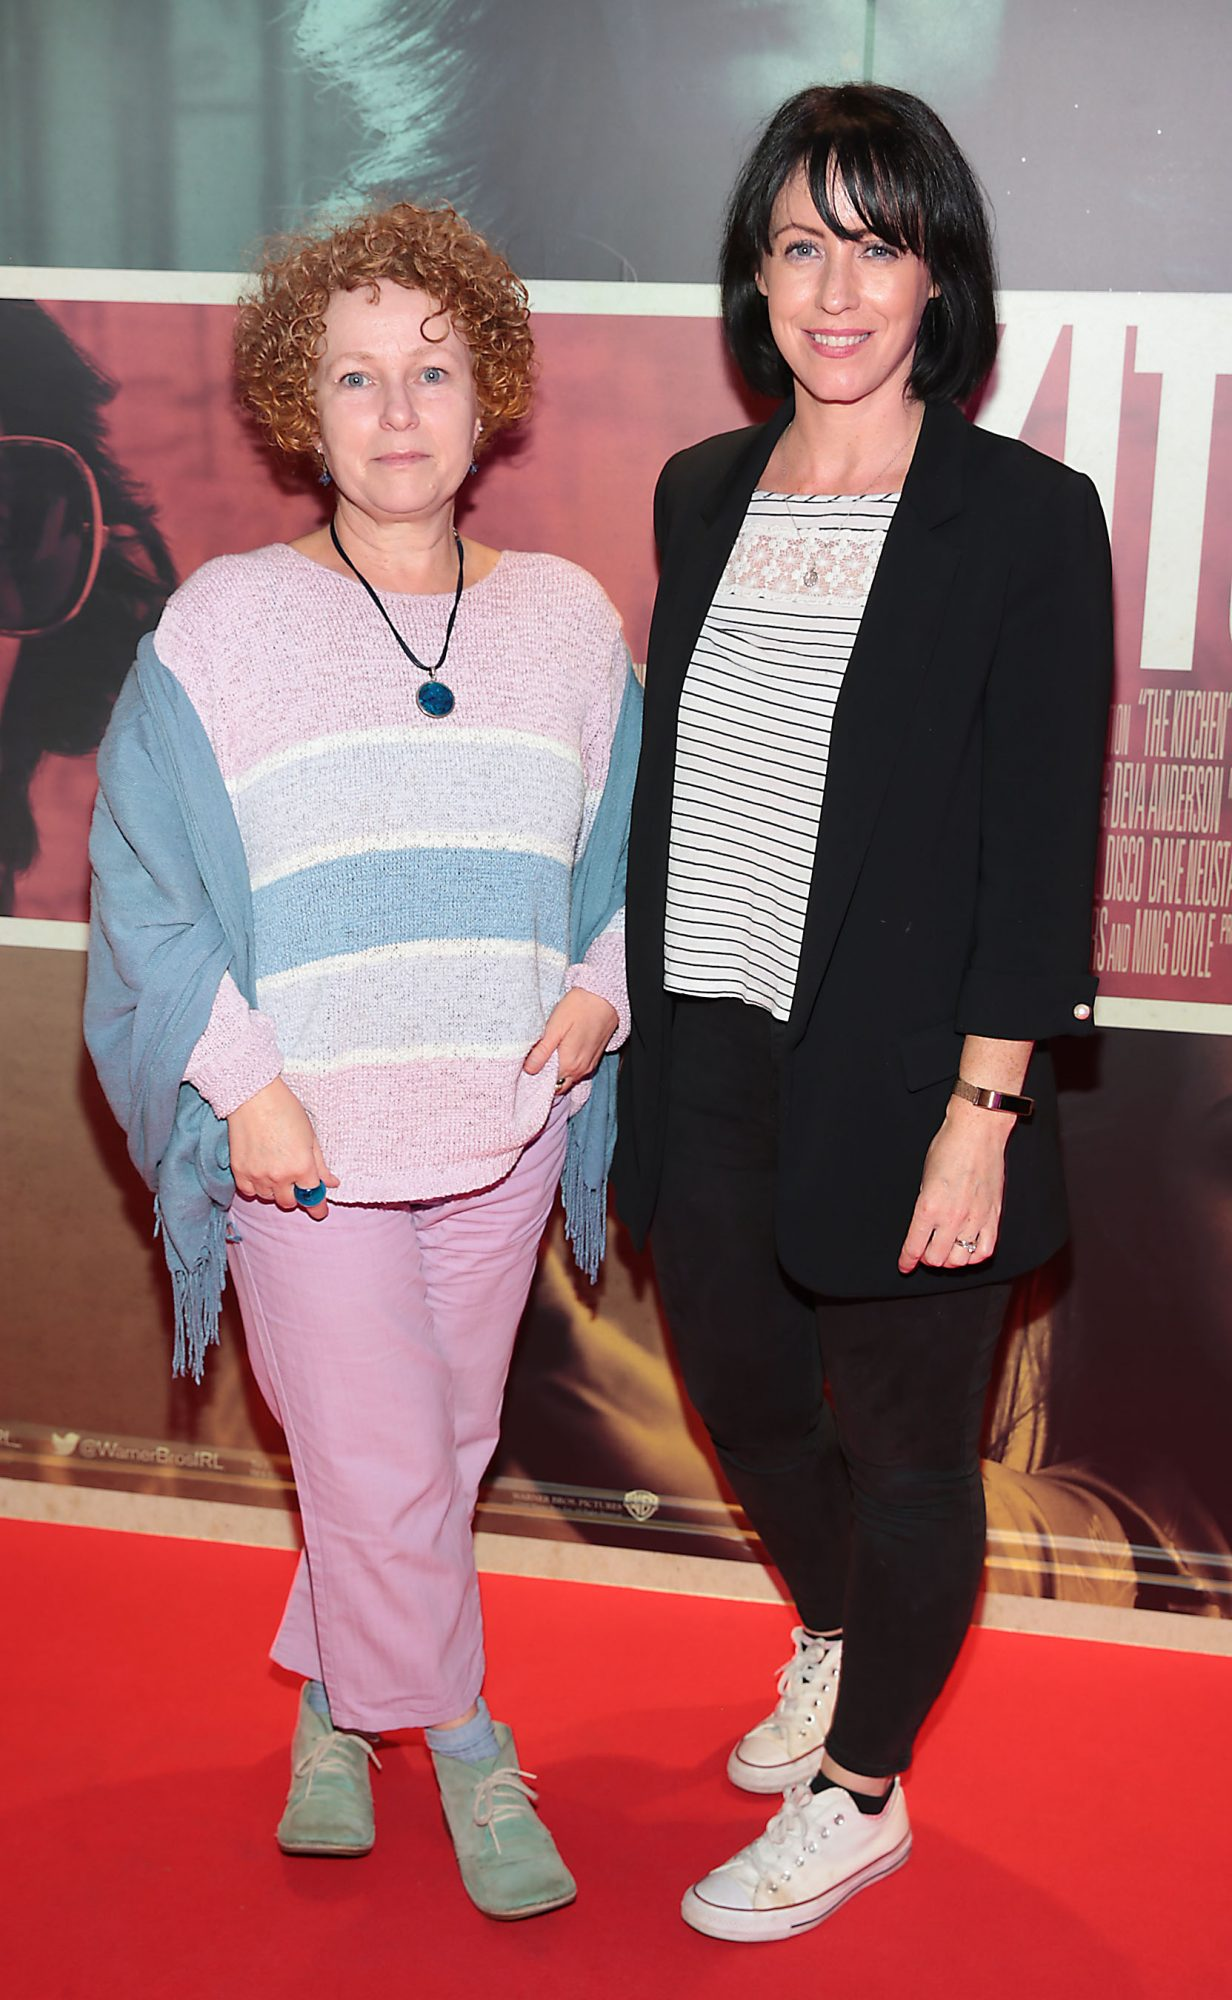 Ally Ni Chiarain anf Maura Foley at the special preview screening of The Kitchen at Cineworld, Dublin.  Picture: Brian McEvoy